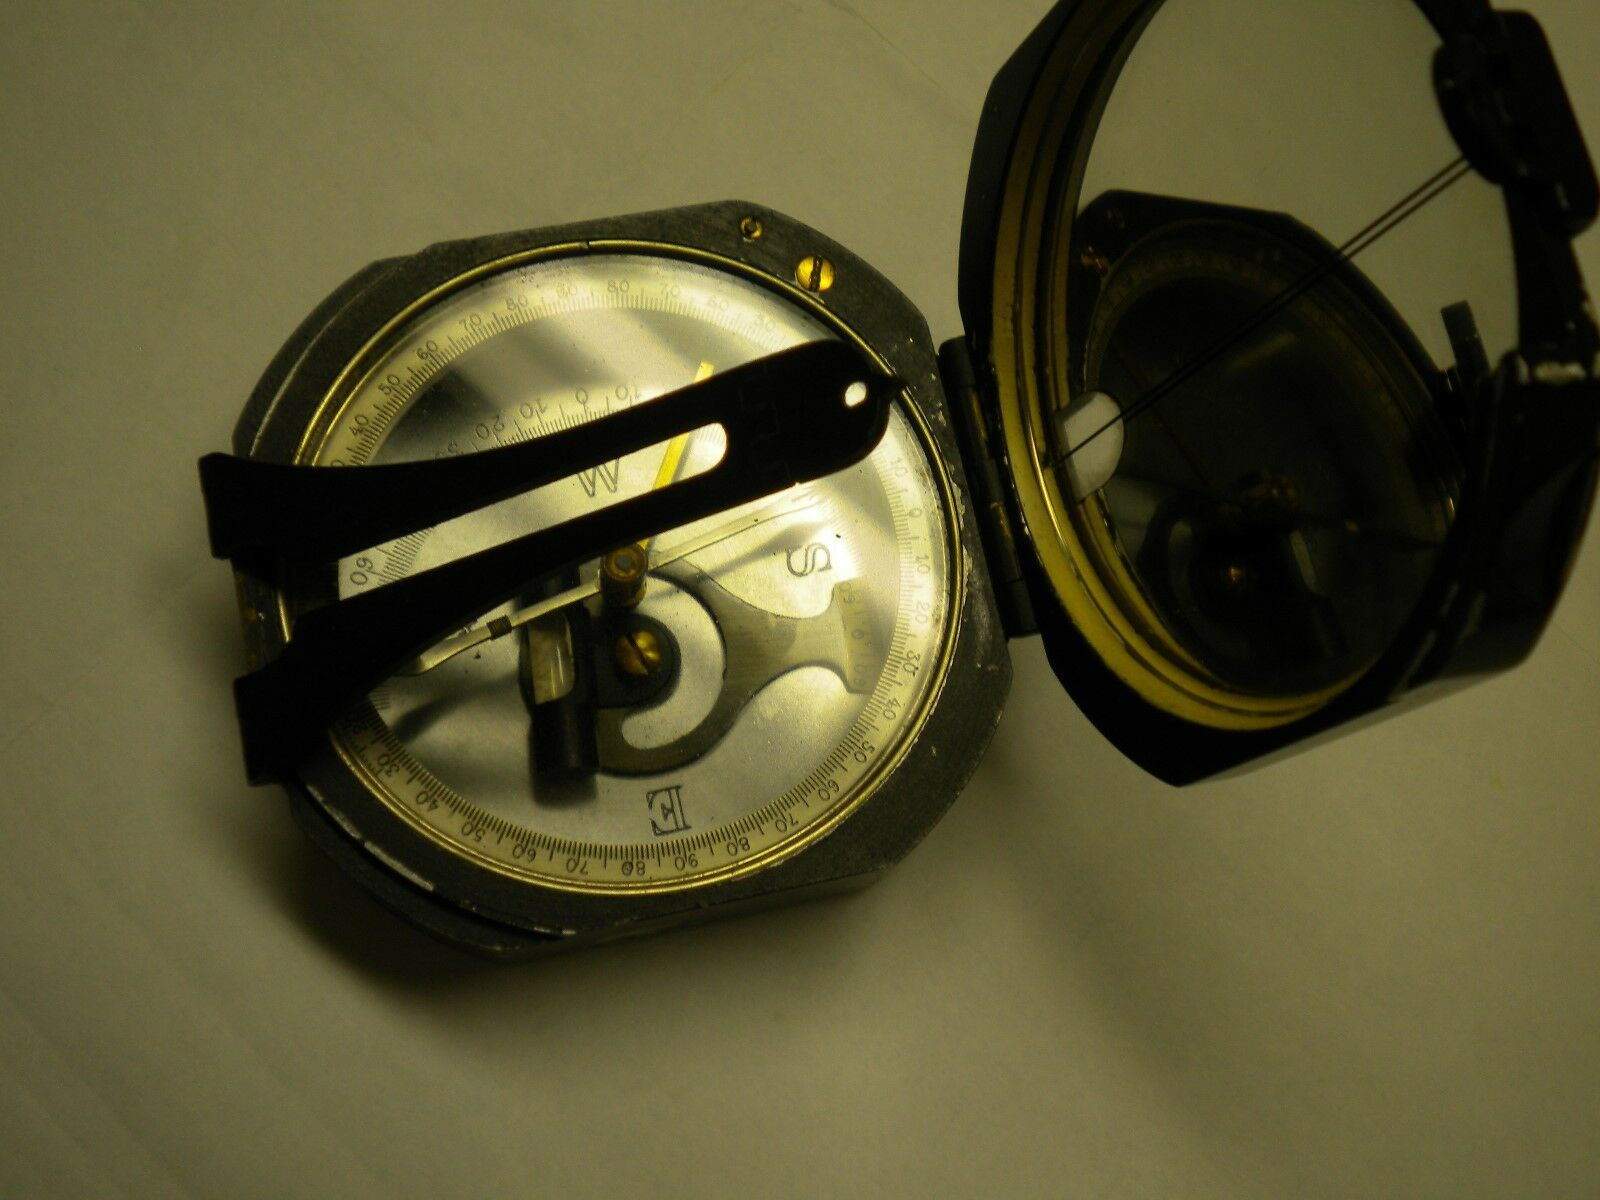 K & E land Surveyors Compass Pat.  Feb 2, 1926 with bi-pod connector  not to be missed!